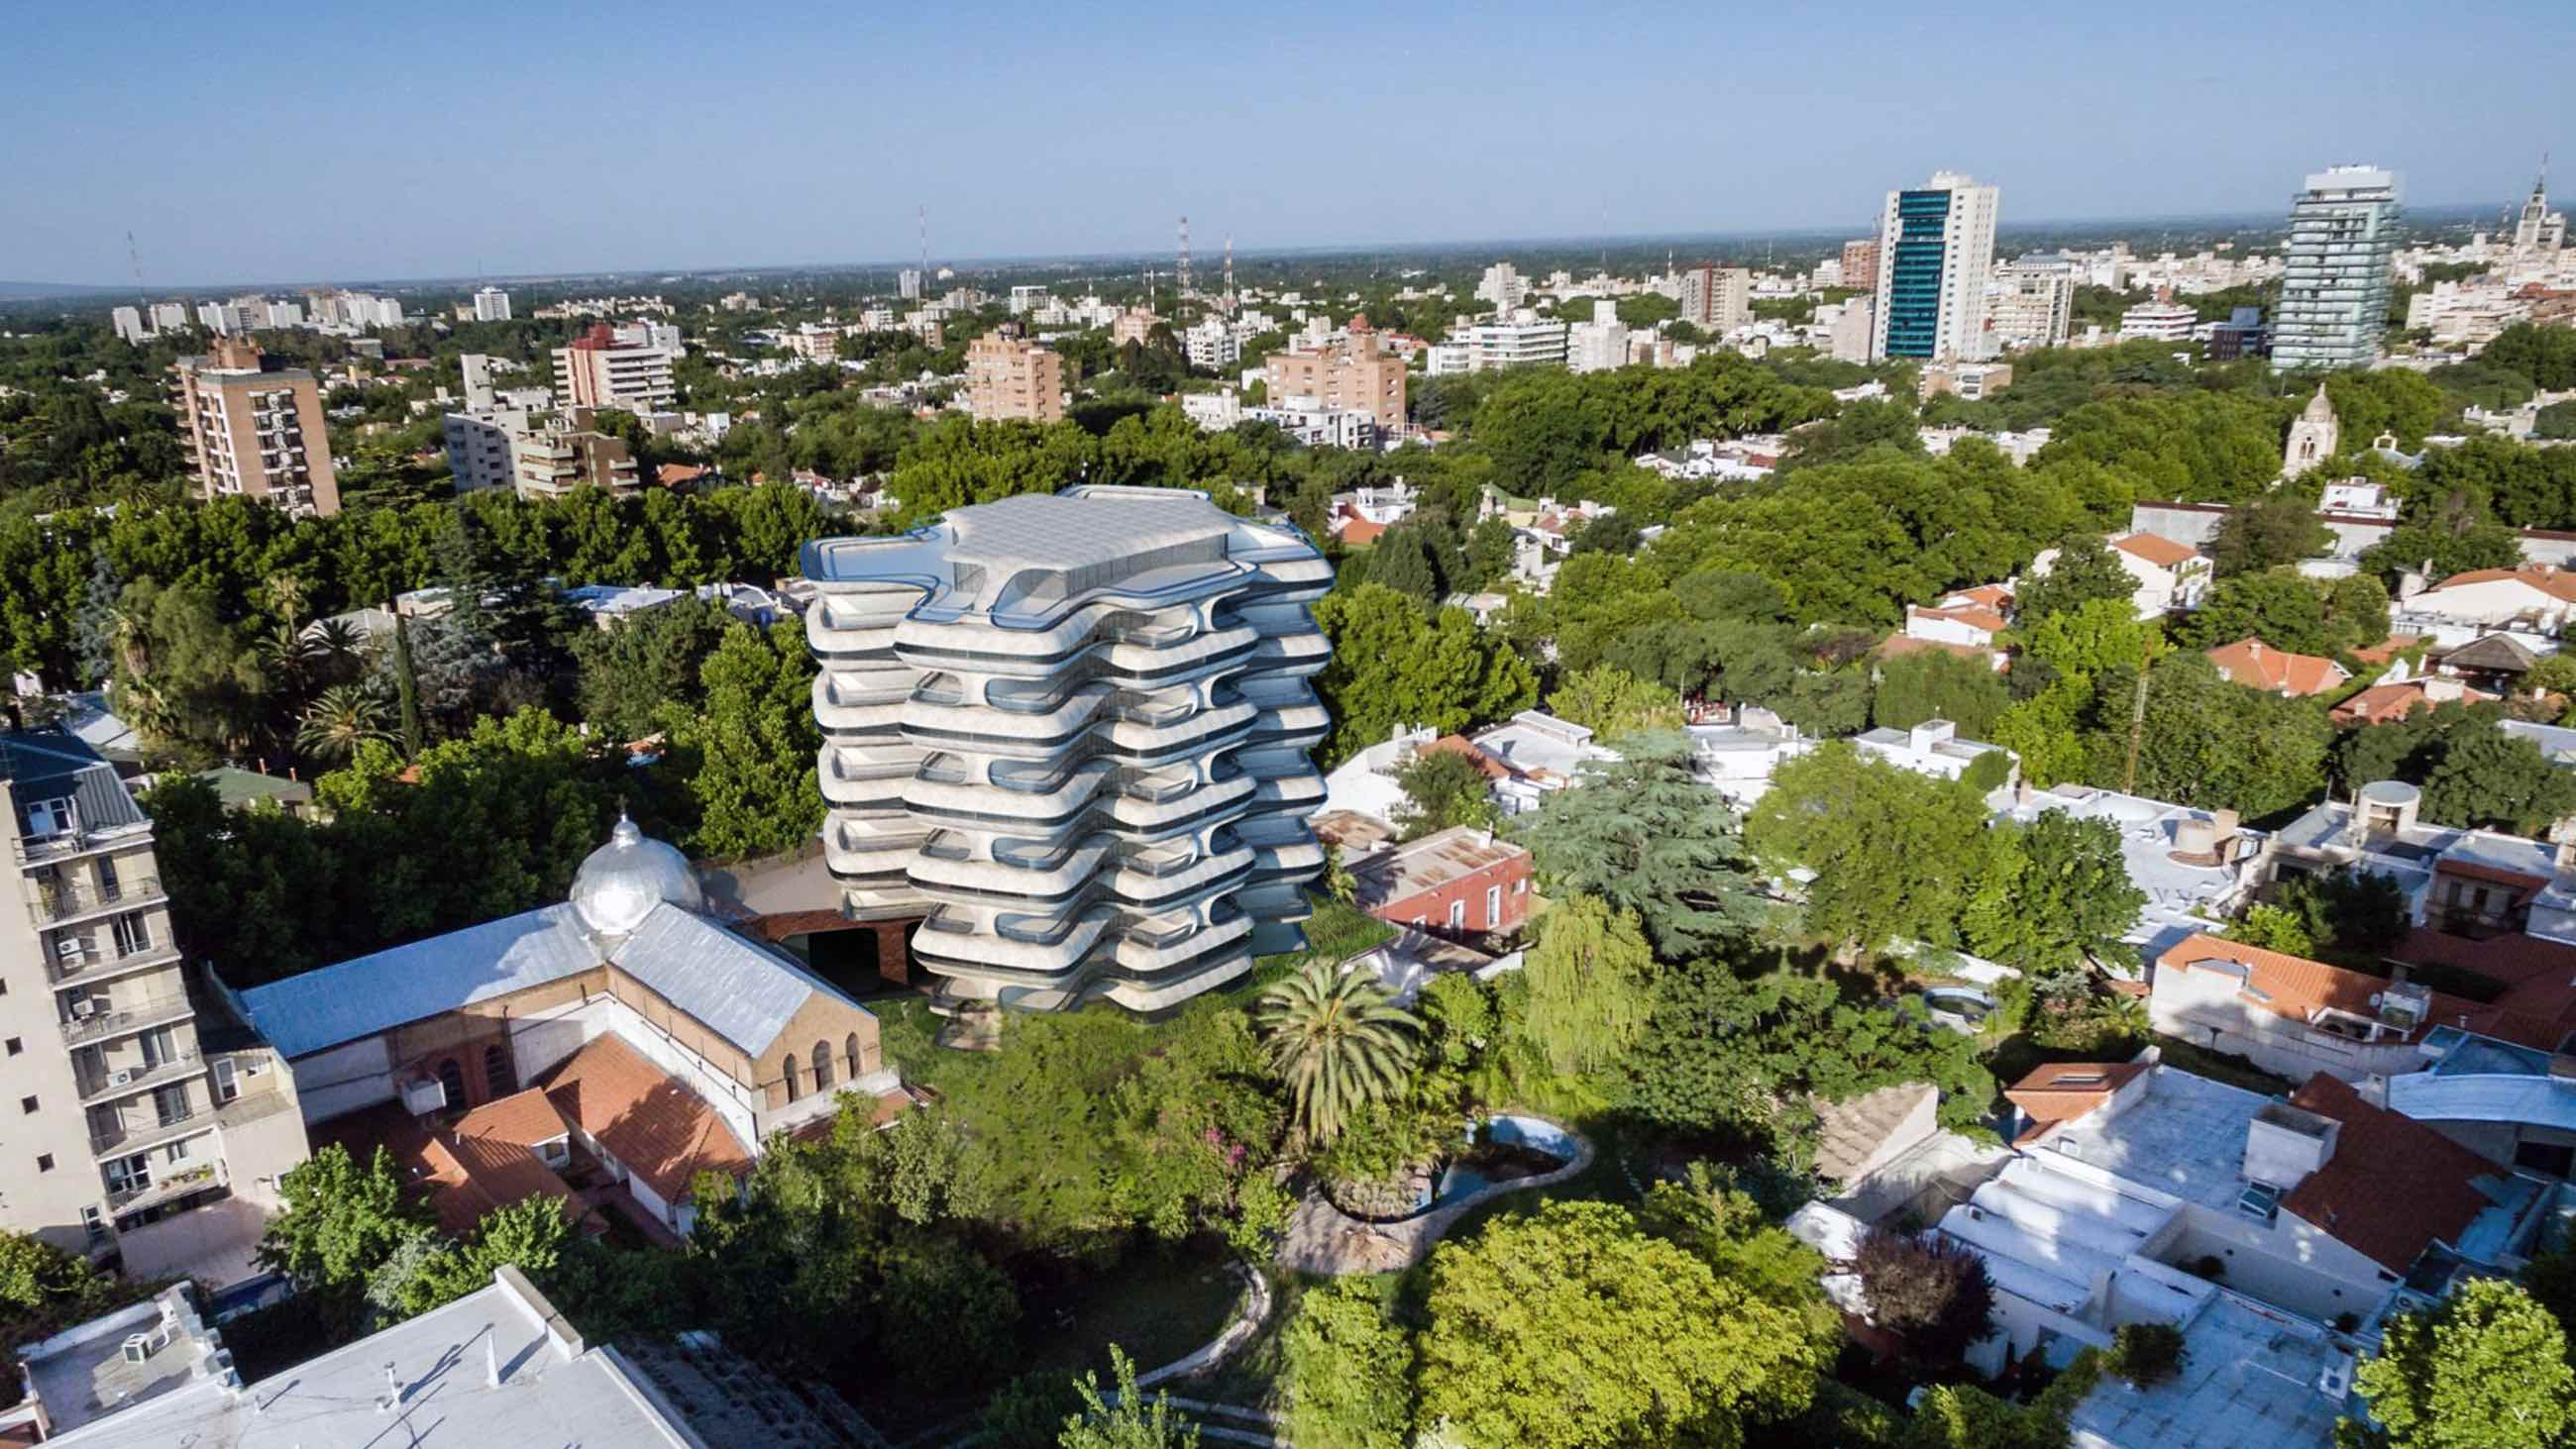 PZ residential apartment Aerial Street View Image by OF. Studio.jpg